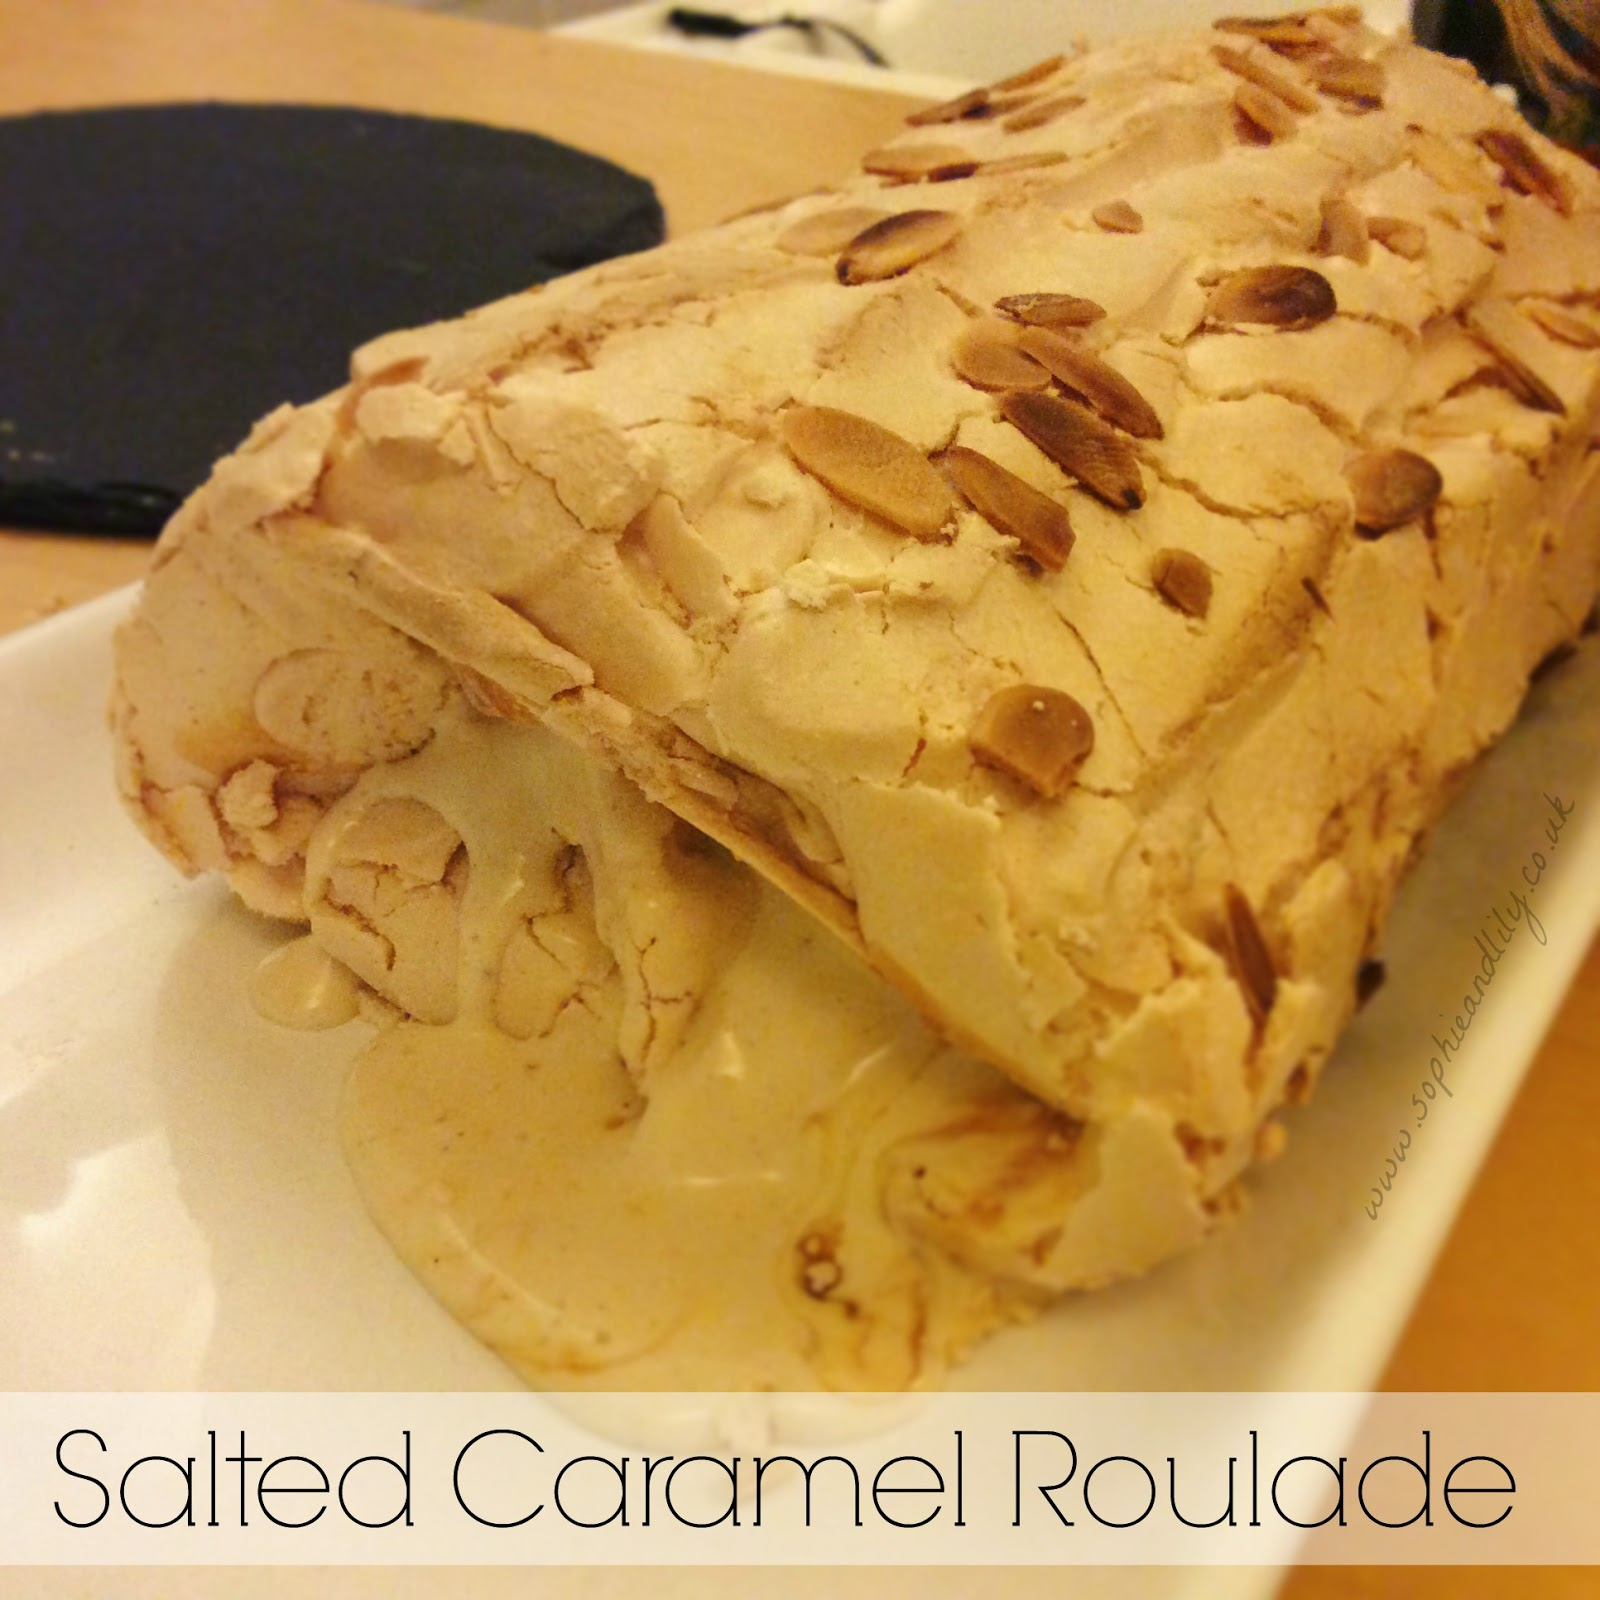 Salted caramel ice cream filled roulade topped with flaked almonds